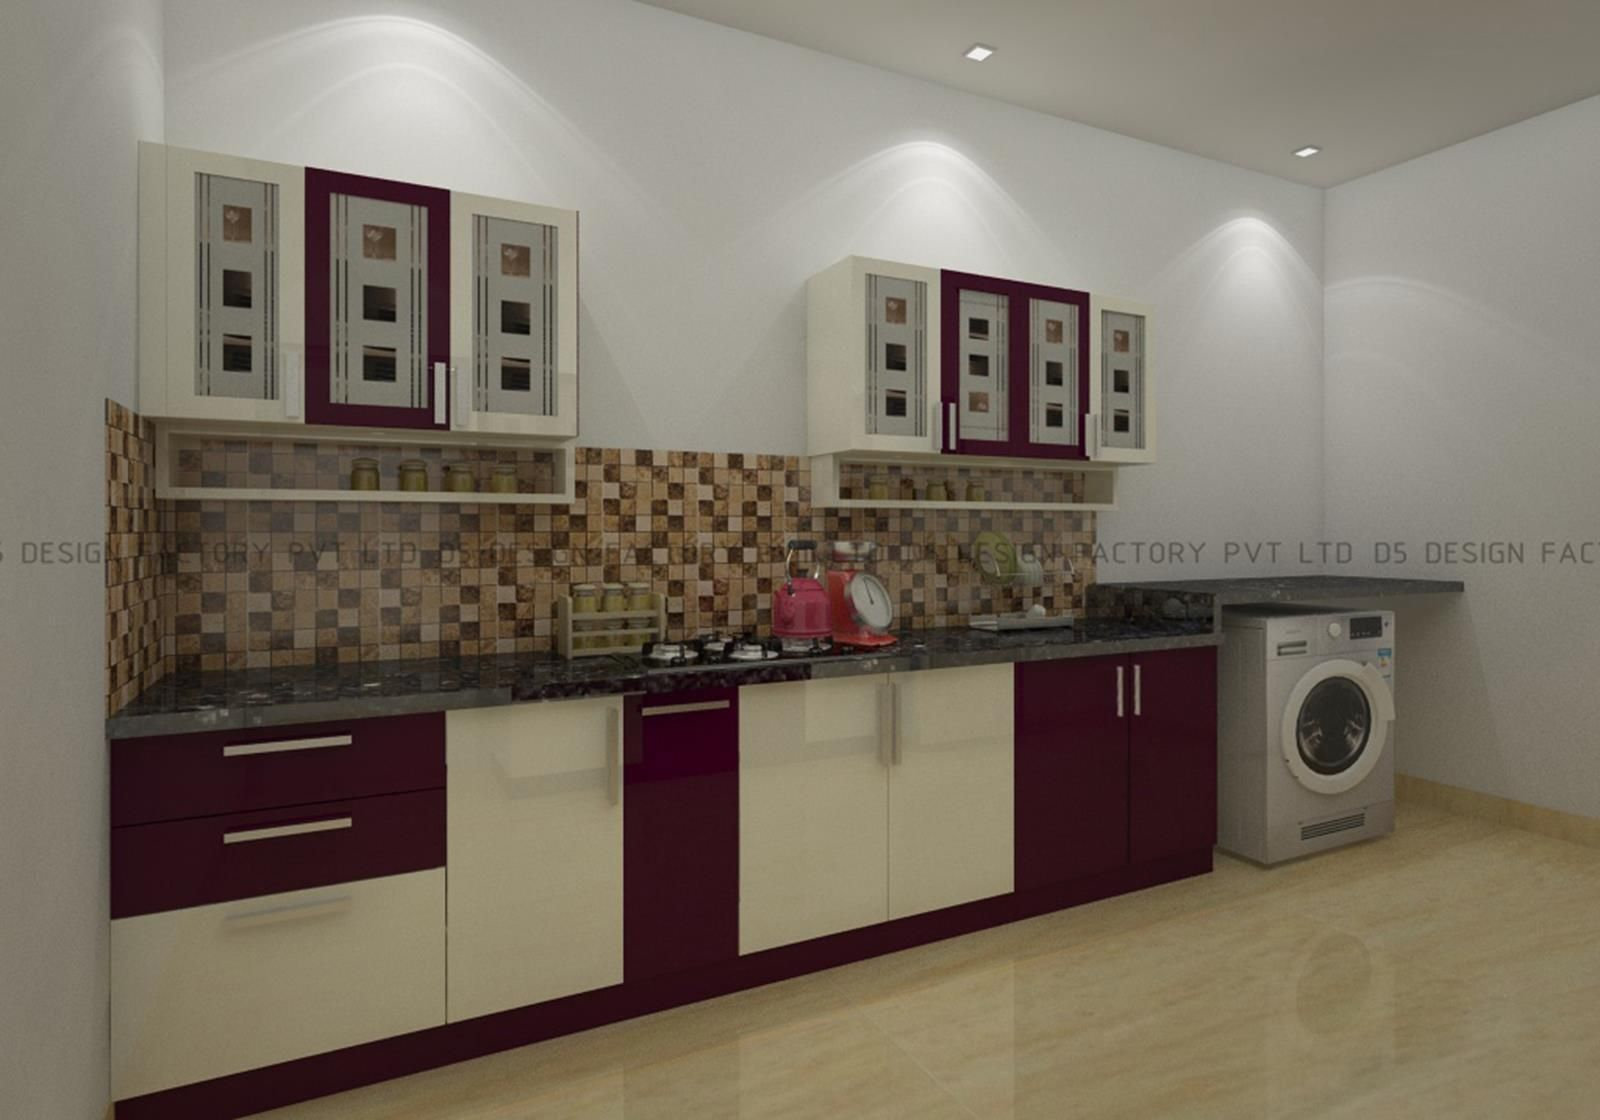 The Maroon And Off White Kitchen Is Totally Modular In Design The Kitchen Has All Modern Facilities Includin Kitchen Design Off White Kitchens Kitchen Modular